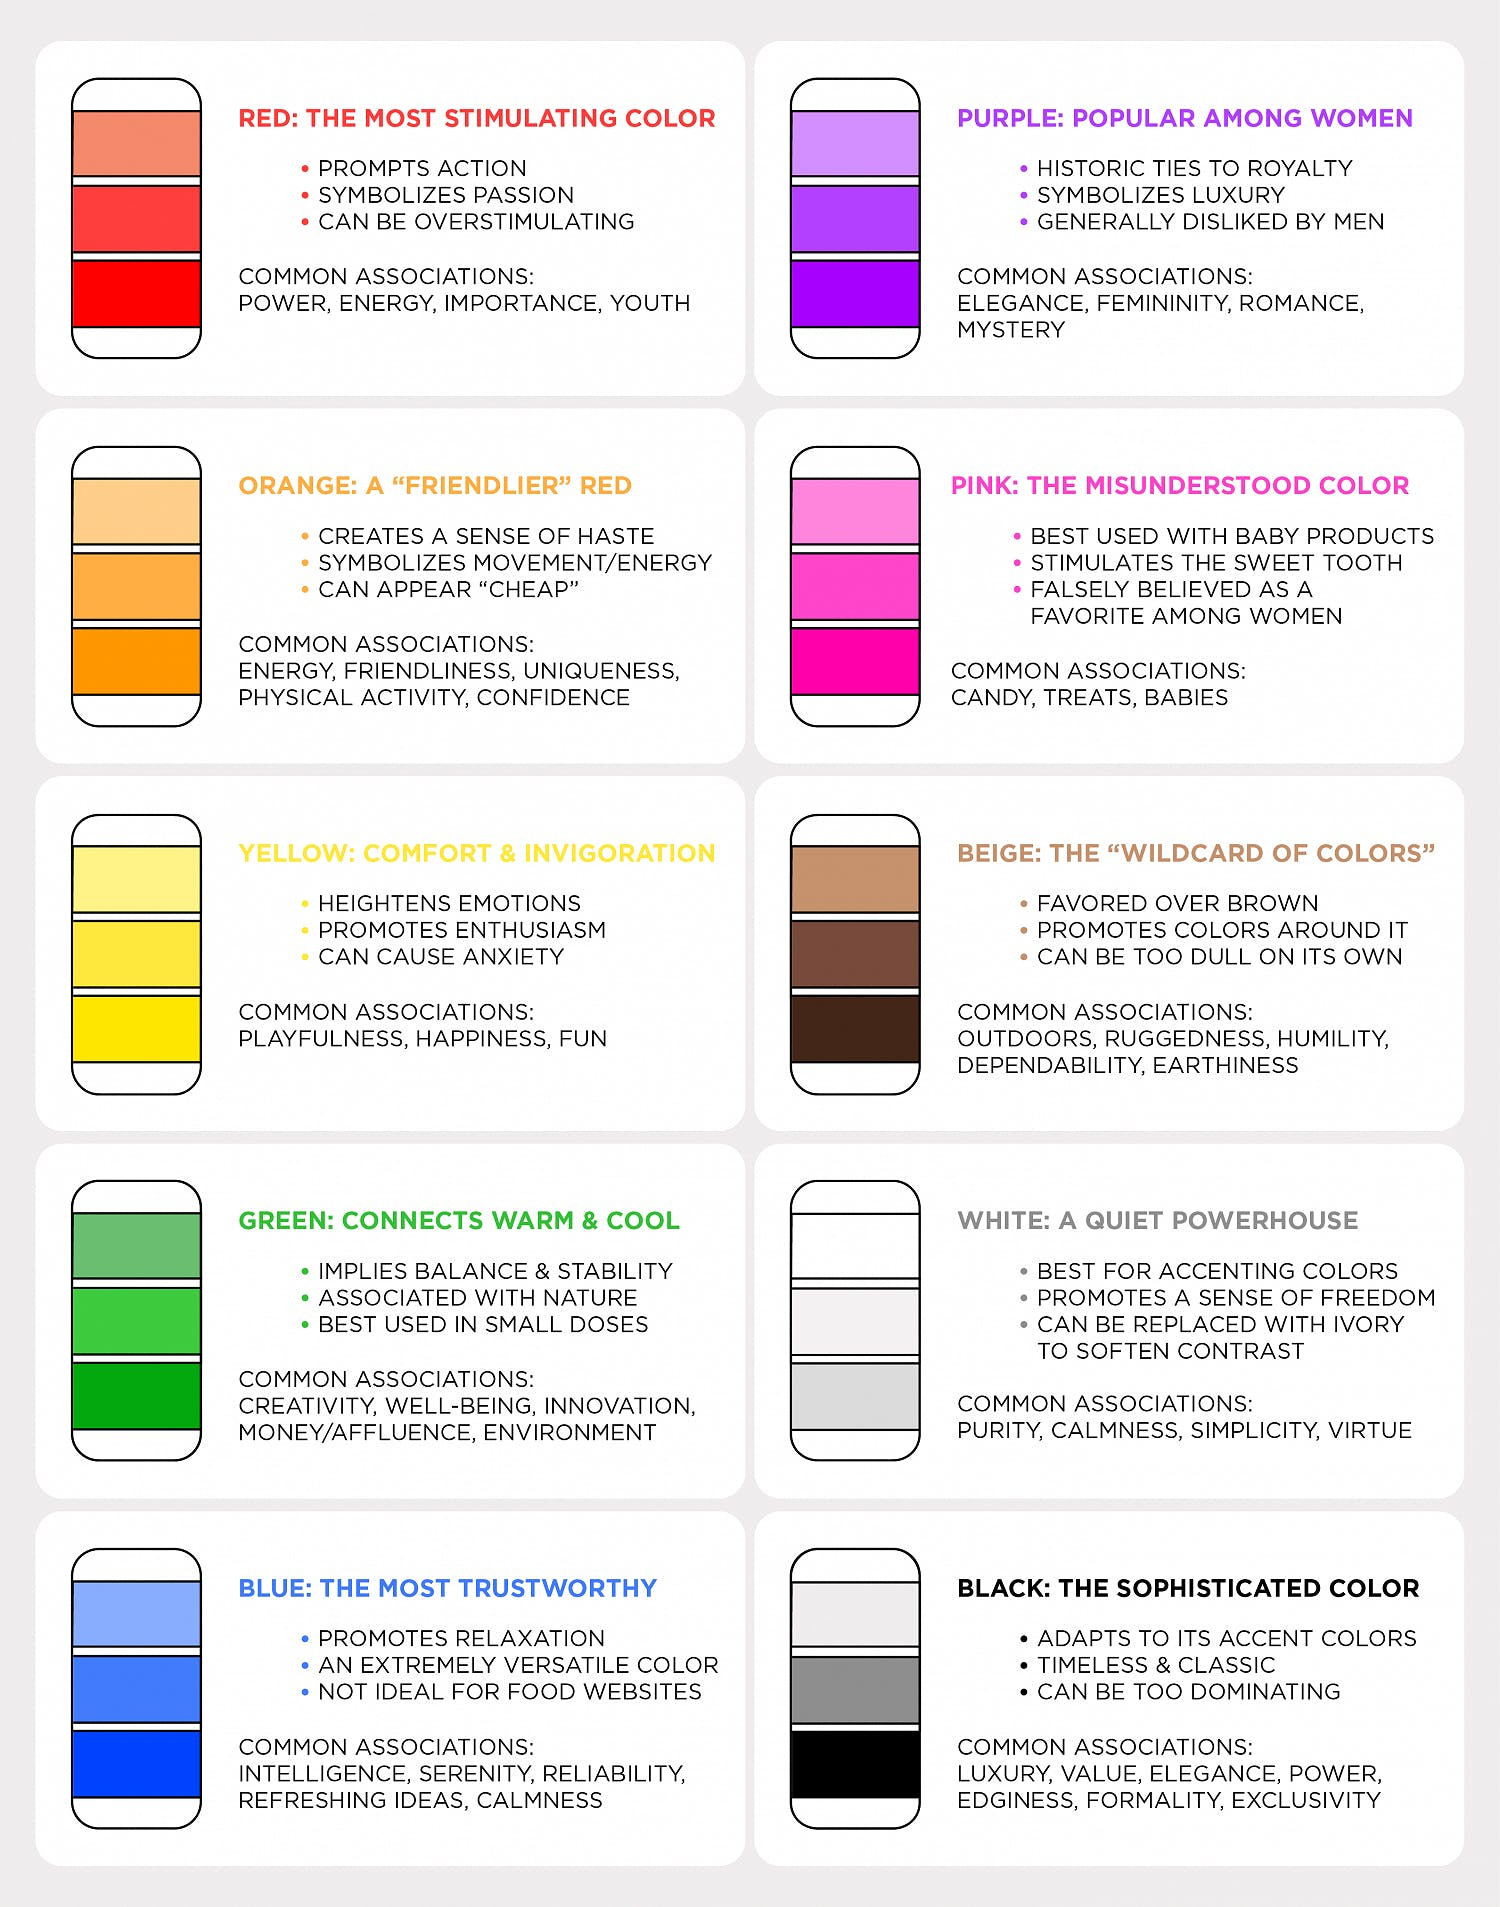 A handy cheat sheet about the psychology behind common colors